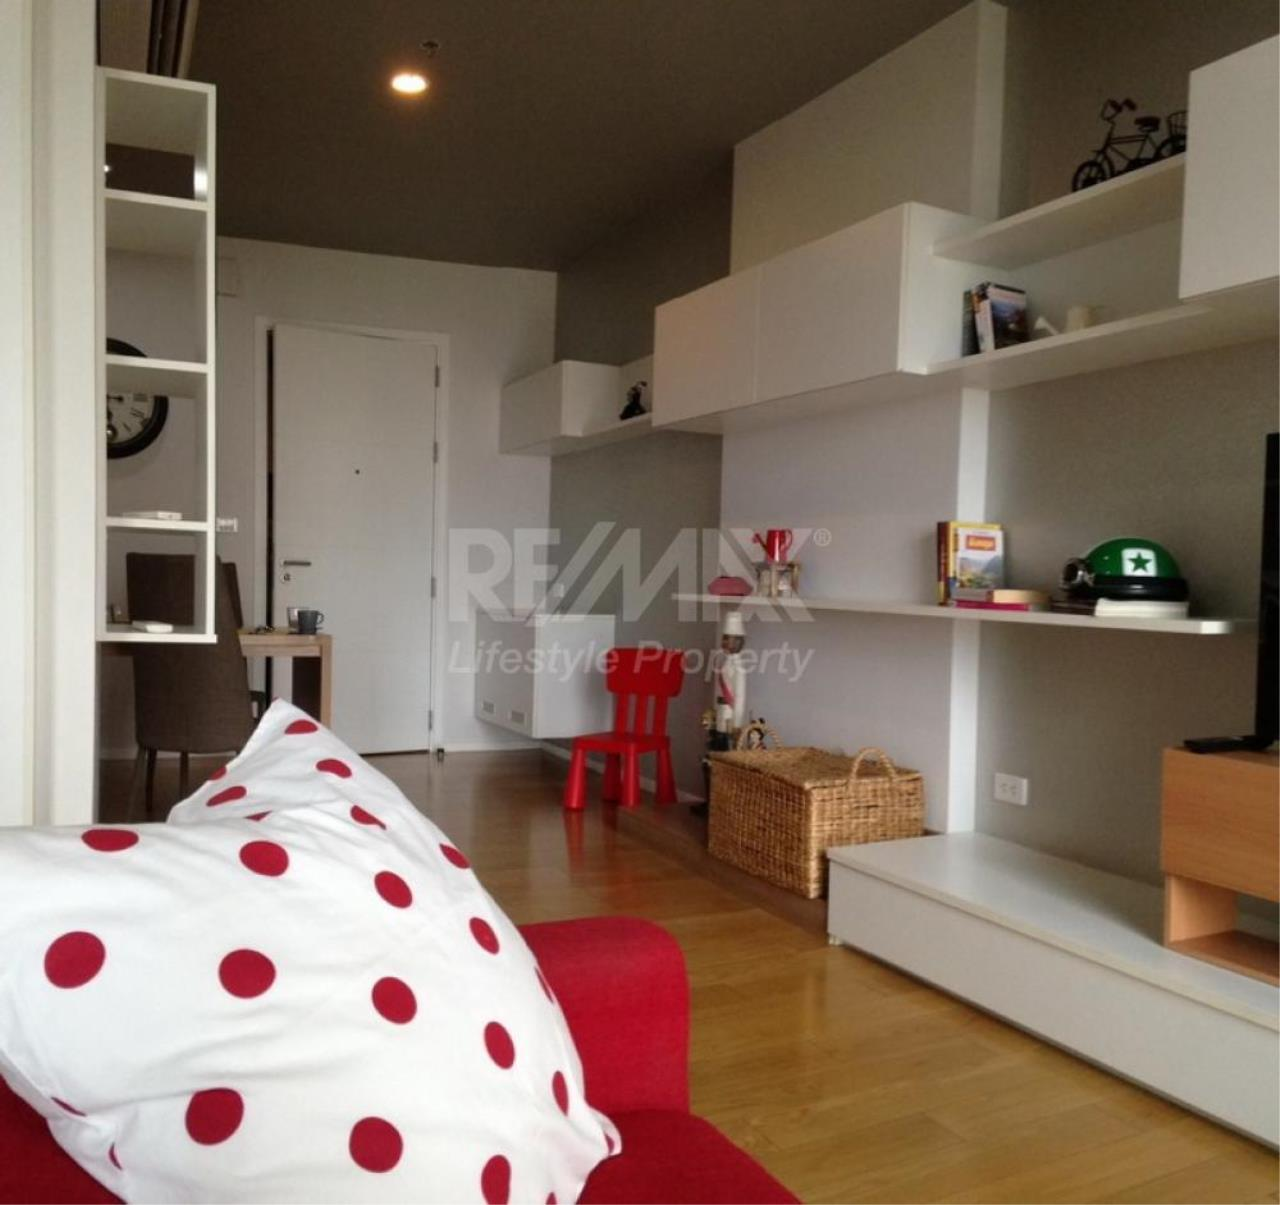 RE/MAX LifeStyle Property Agency's Blocs 77 2